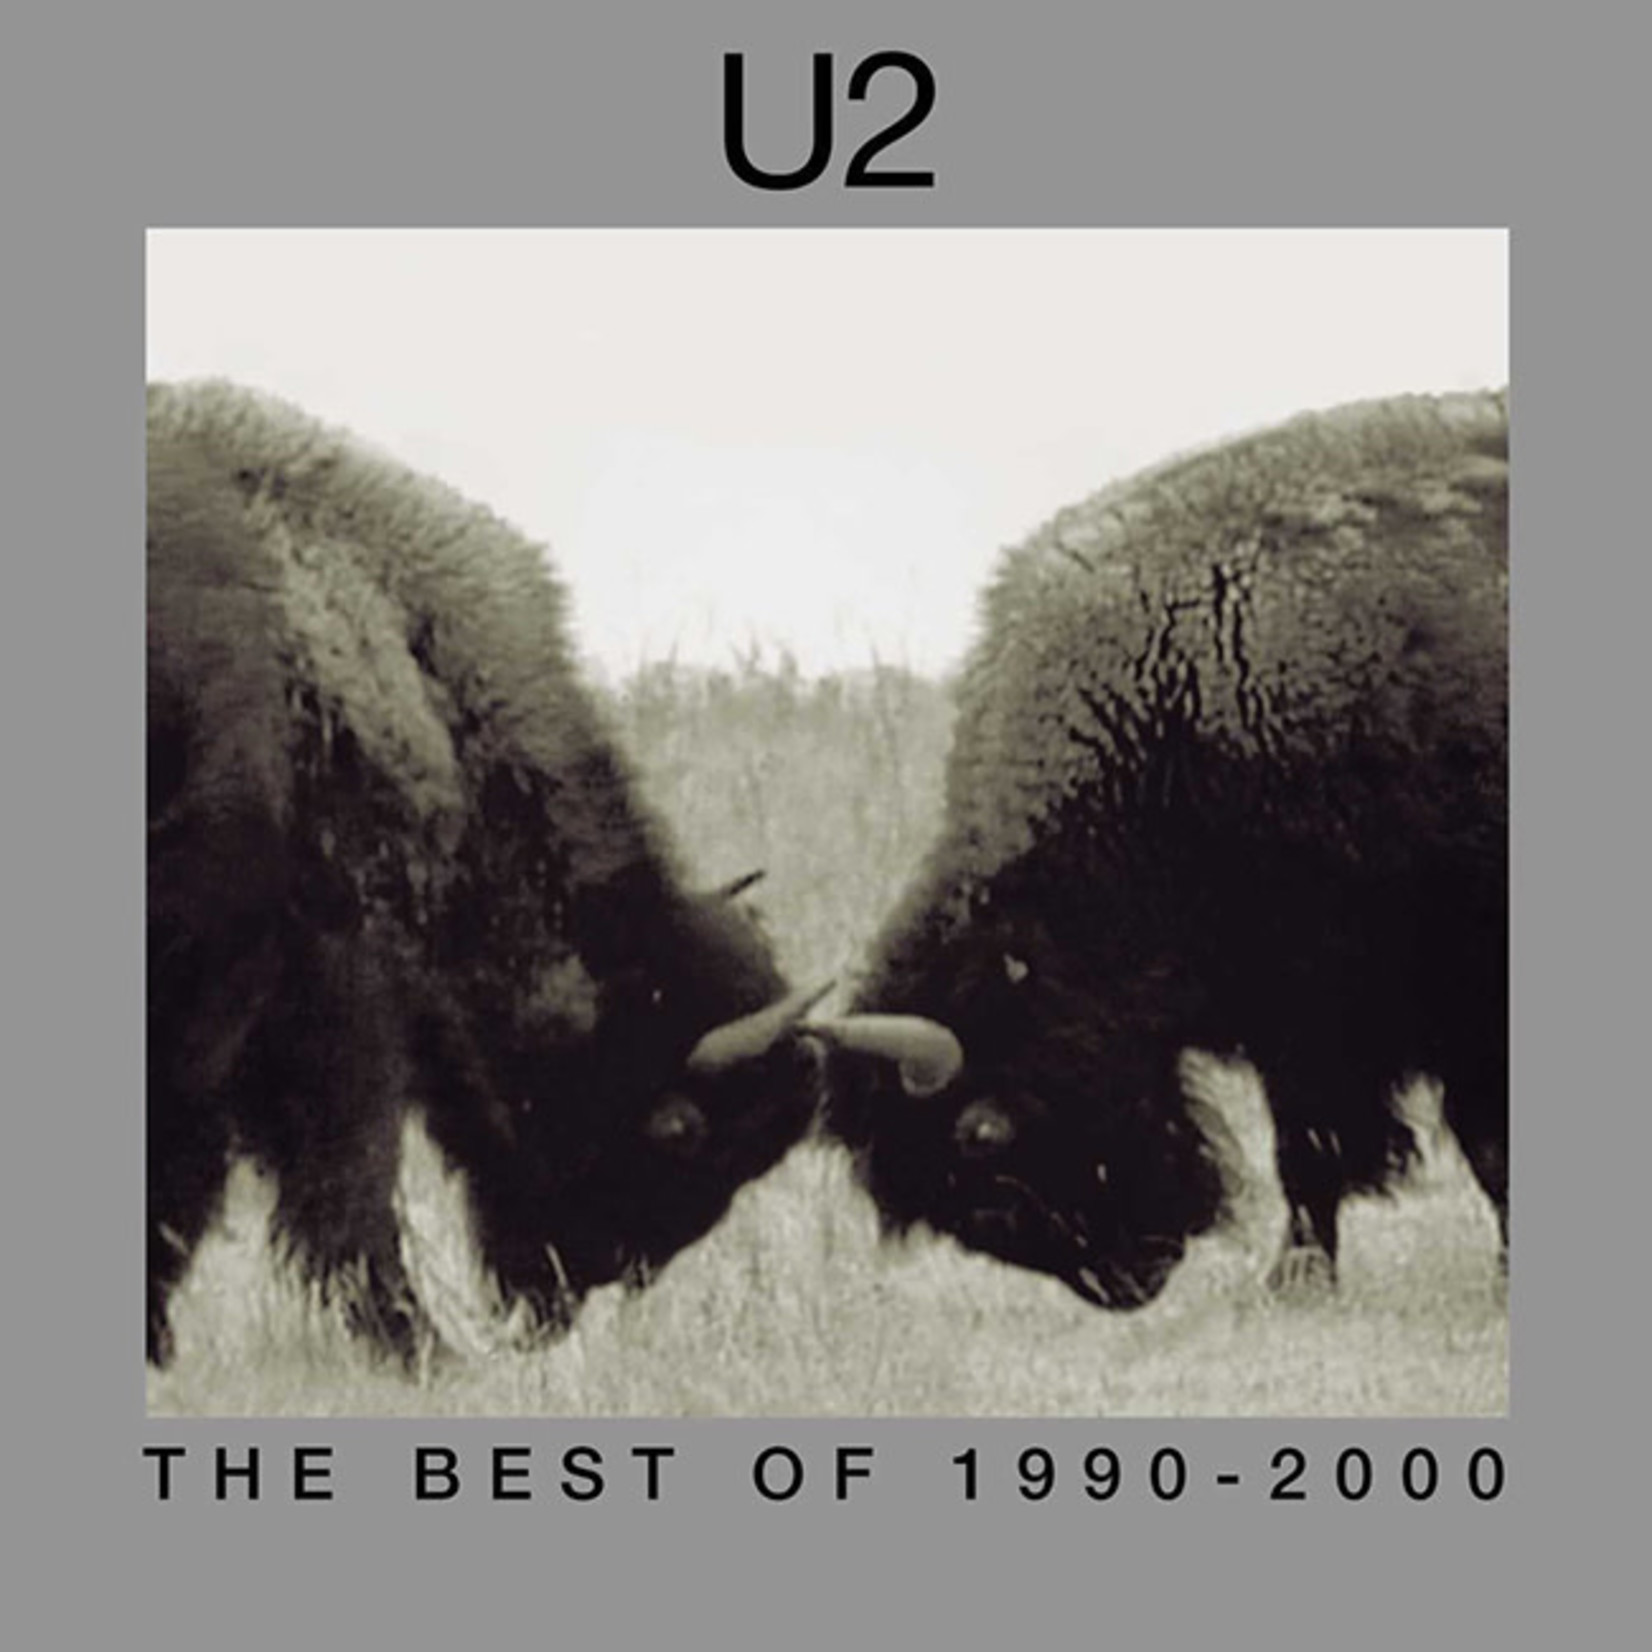 [New] U2: The Best Of 1990-2000